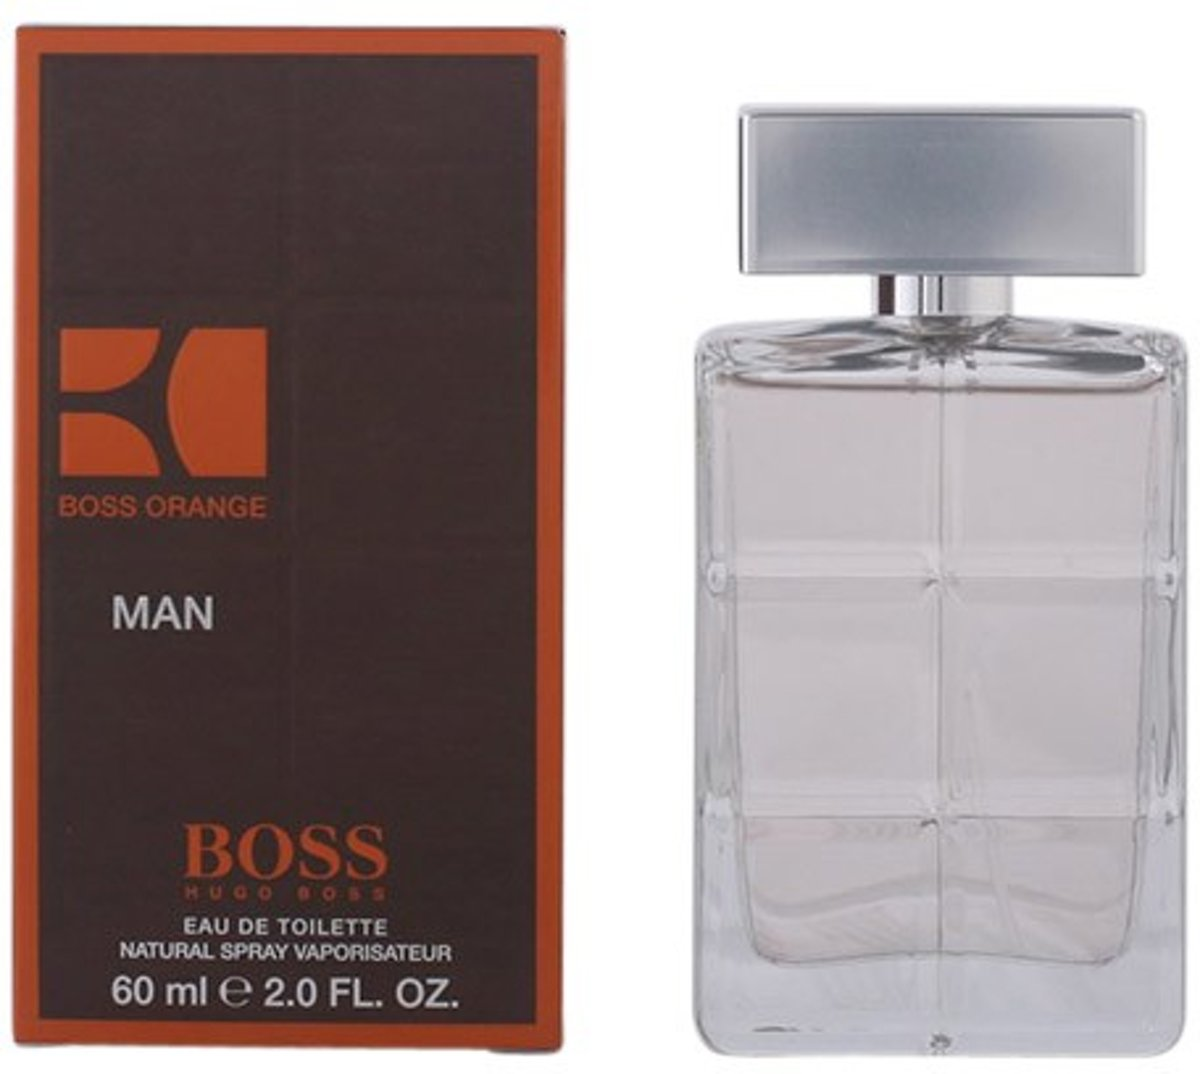 MULTI BUNDEL 2 stuks BOSS ORANGE MAN Eau de Toilette Spray 60 ml